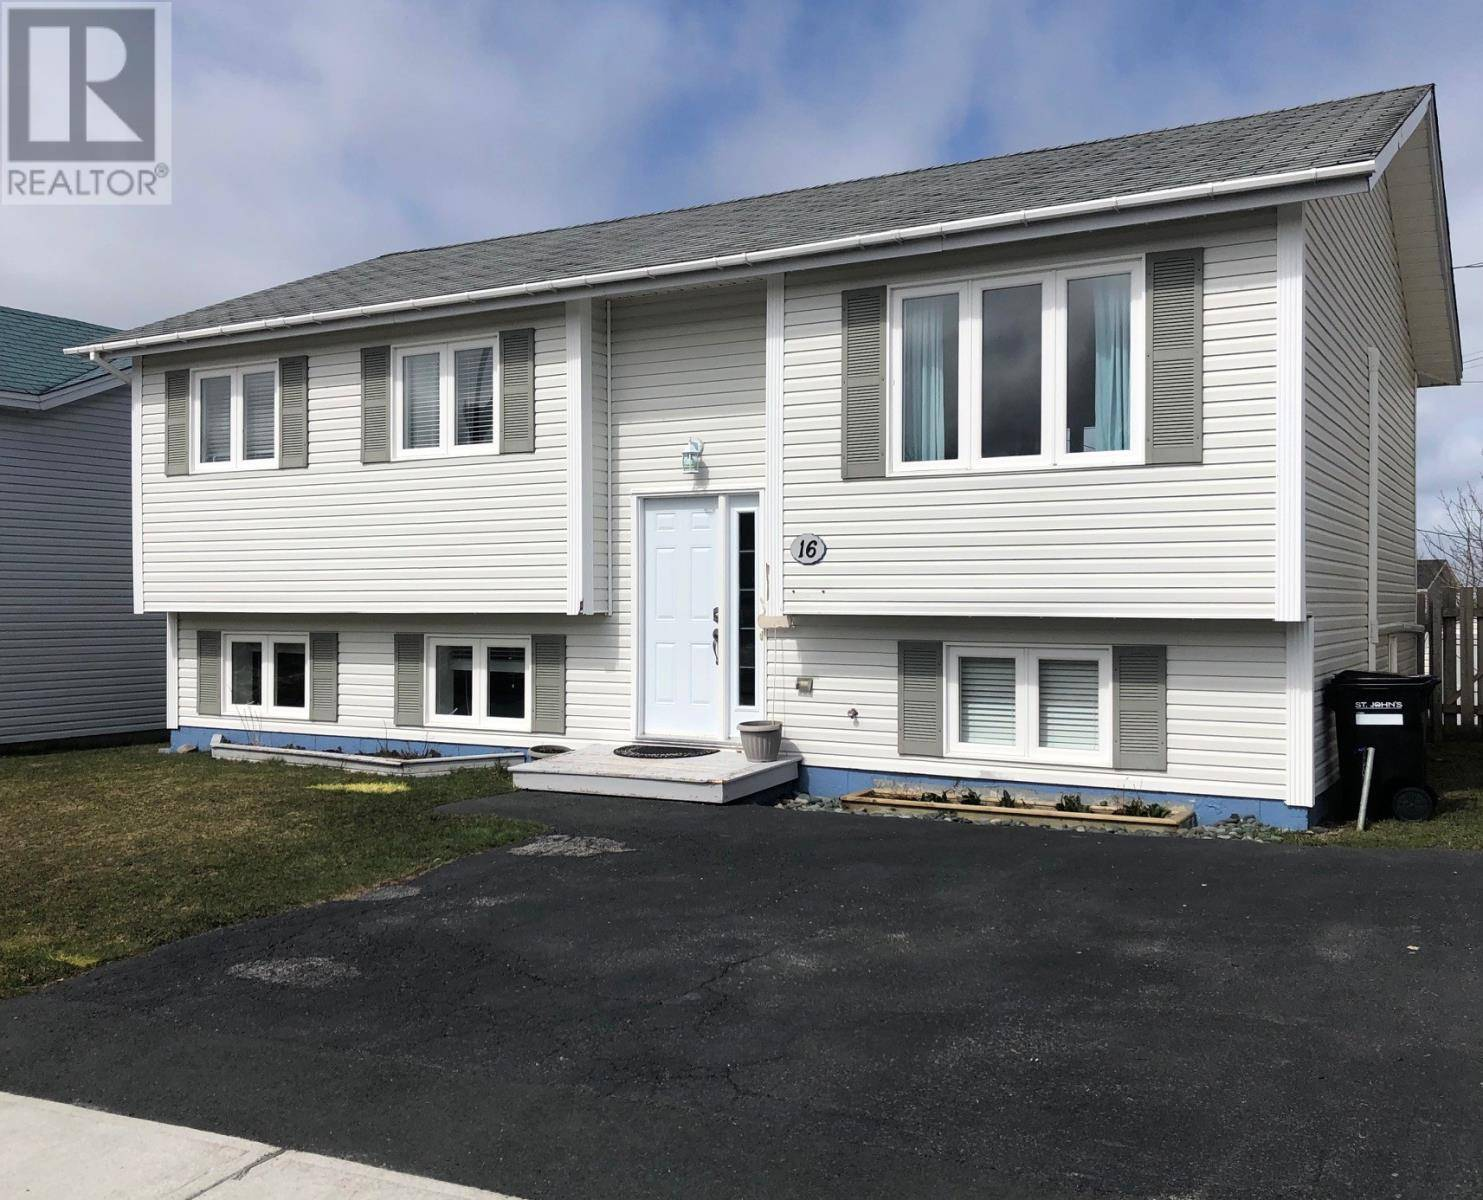 House for sale at 16 Cahill Dr St. John's Newfoundland - MLS: 1211668